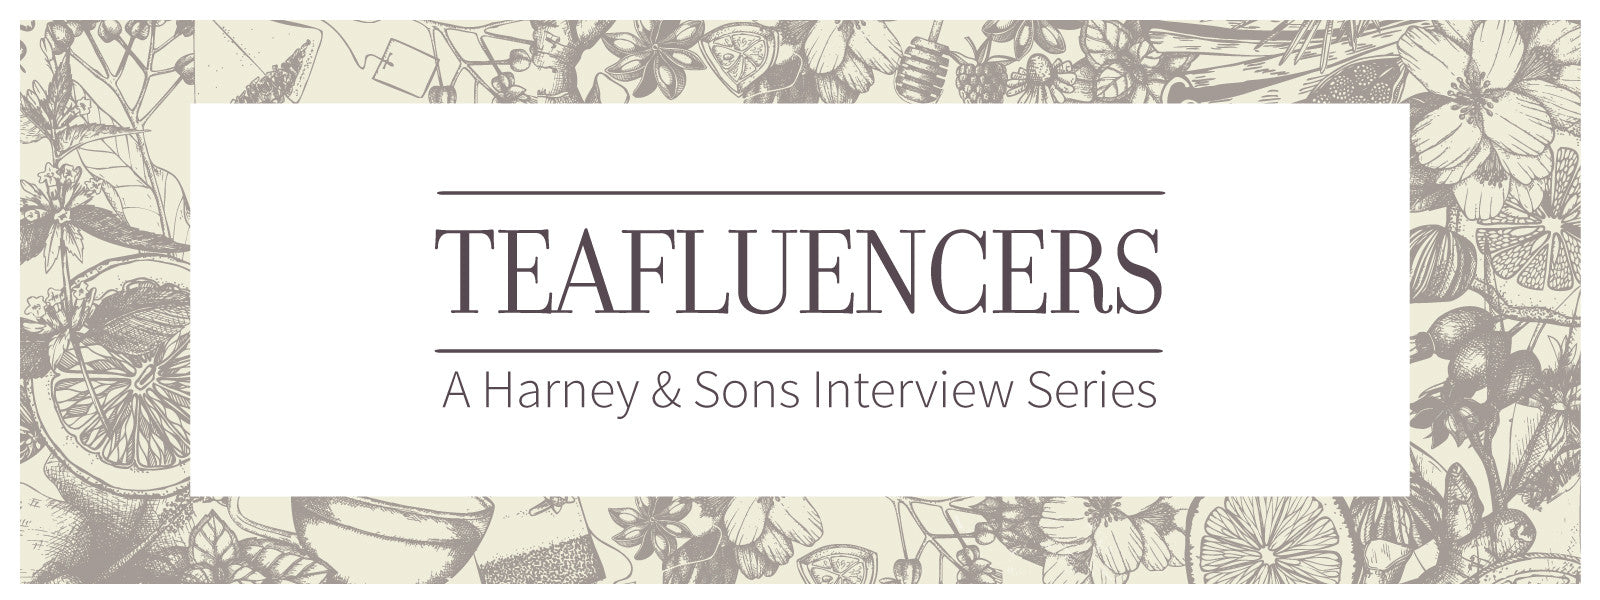 Harney & Sons Teafluencer Interview: Stacie Grissom